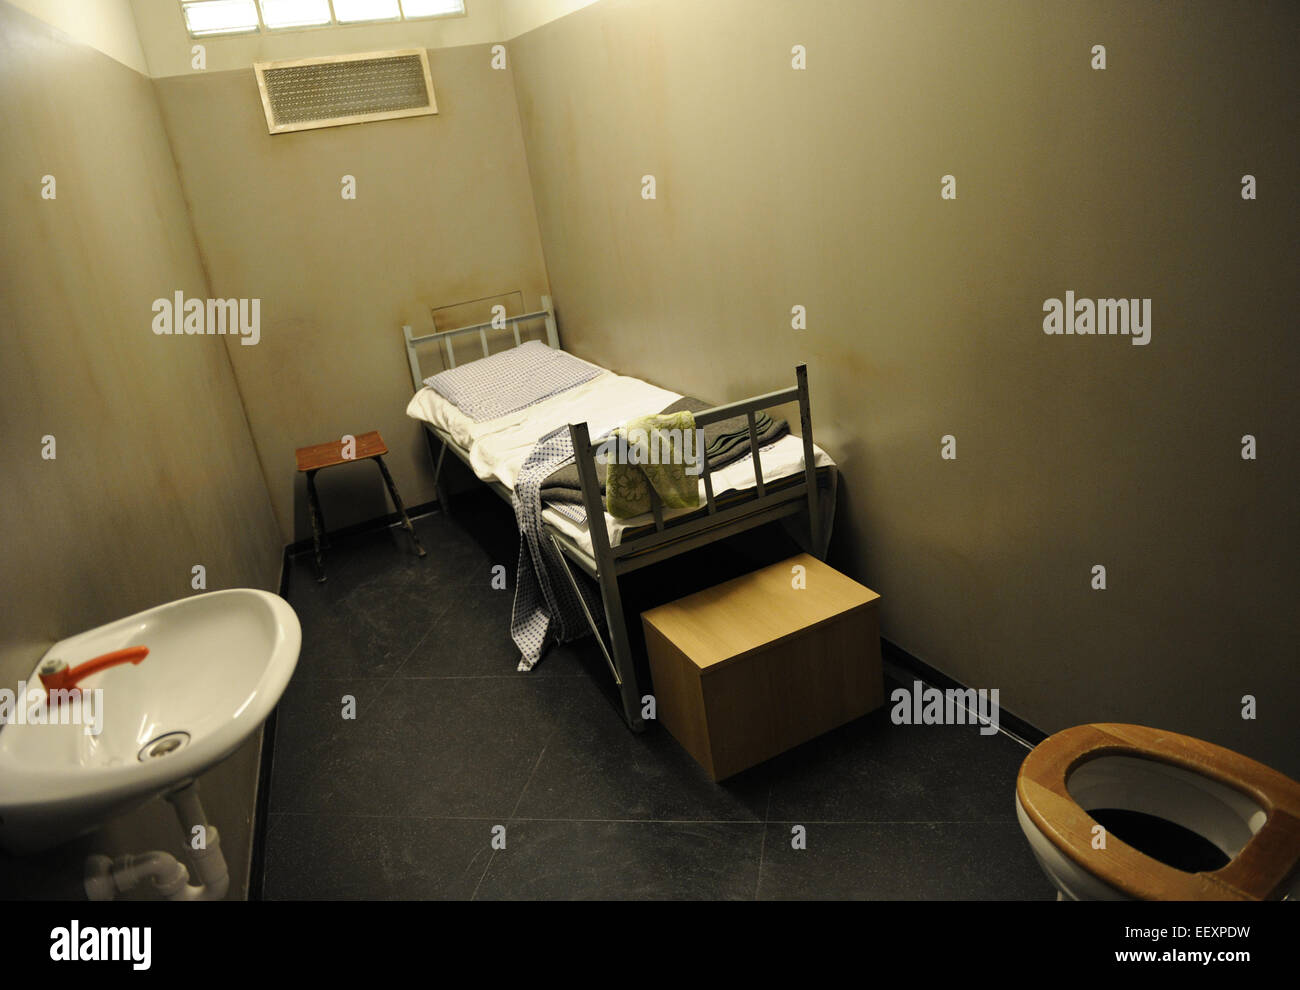 East Germany. Prison cell. Recreation. DDR Museum. Berlin. Germany. - Stock Image